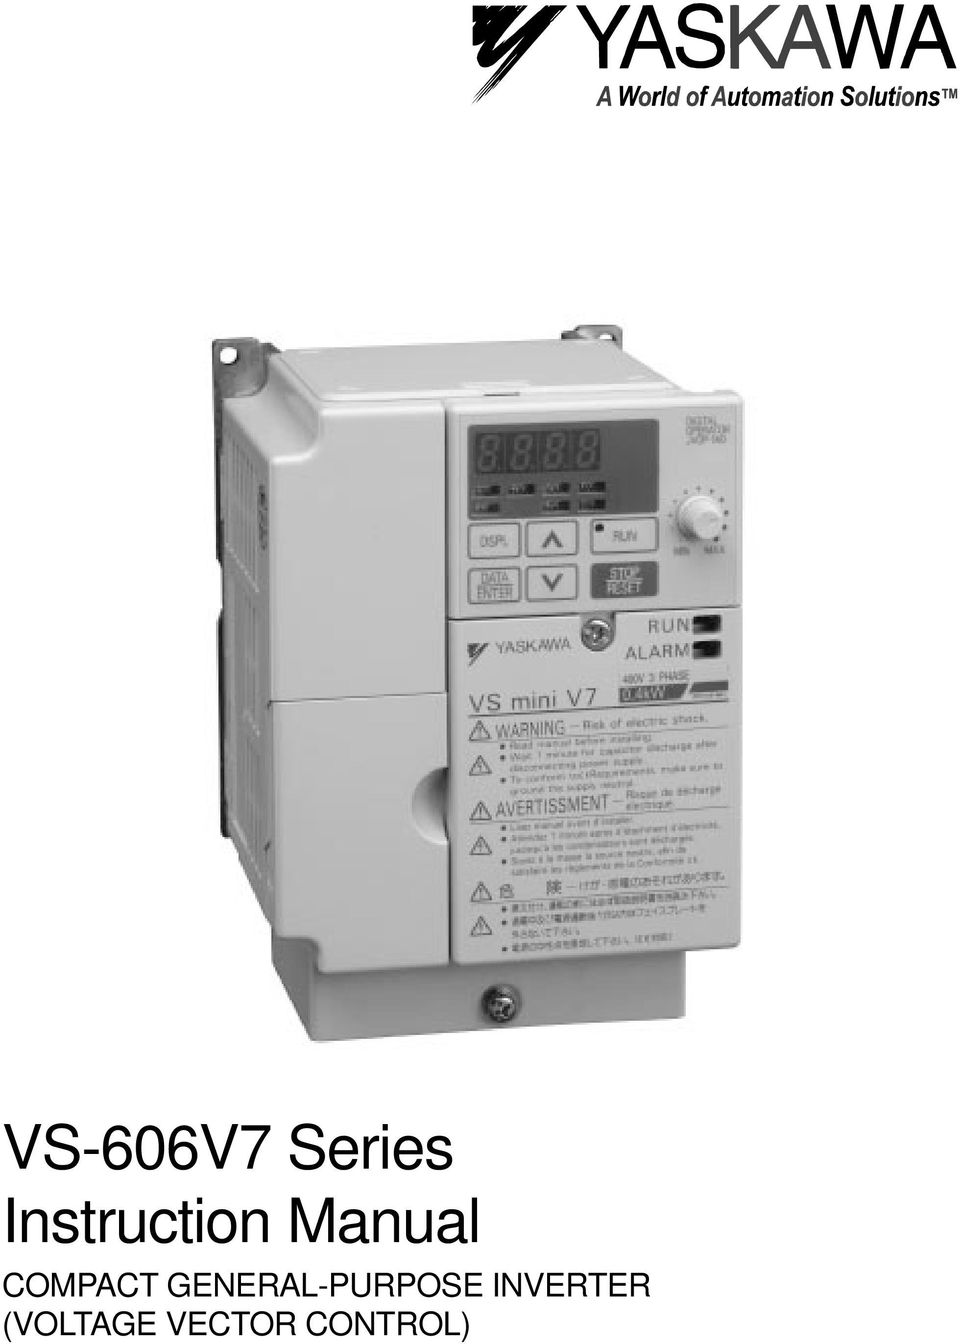 yaskawa v7 wiring diagram wiring diagram libraries yaskawa v7 wiring diagram simple wiring diagramsyaskawa v7 wiring diagram simple wiring diagram schema plug wiring